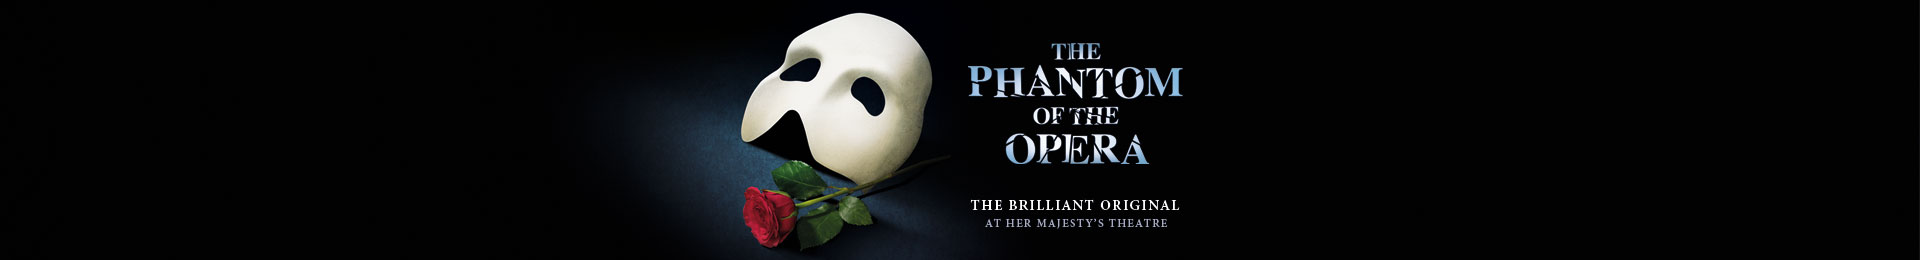 Phantom of the Opera Tickets at the Her Majesty's Theatre